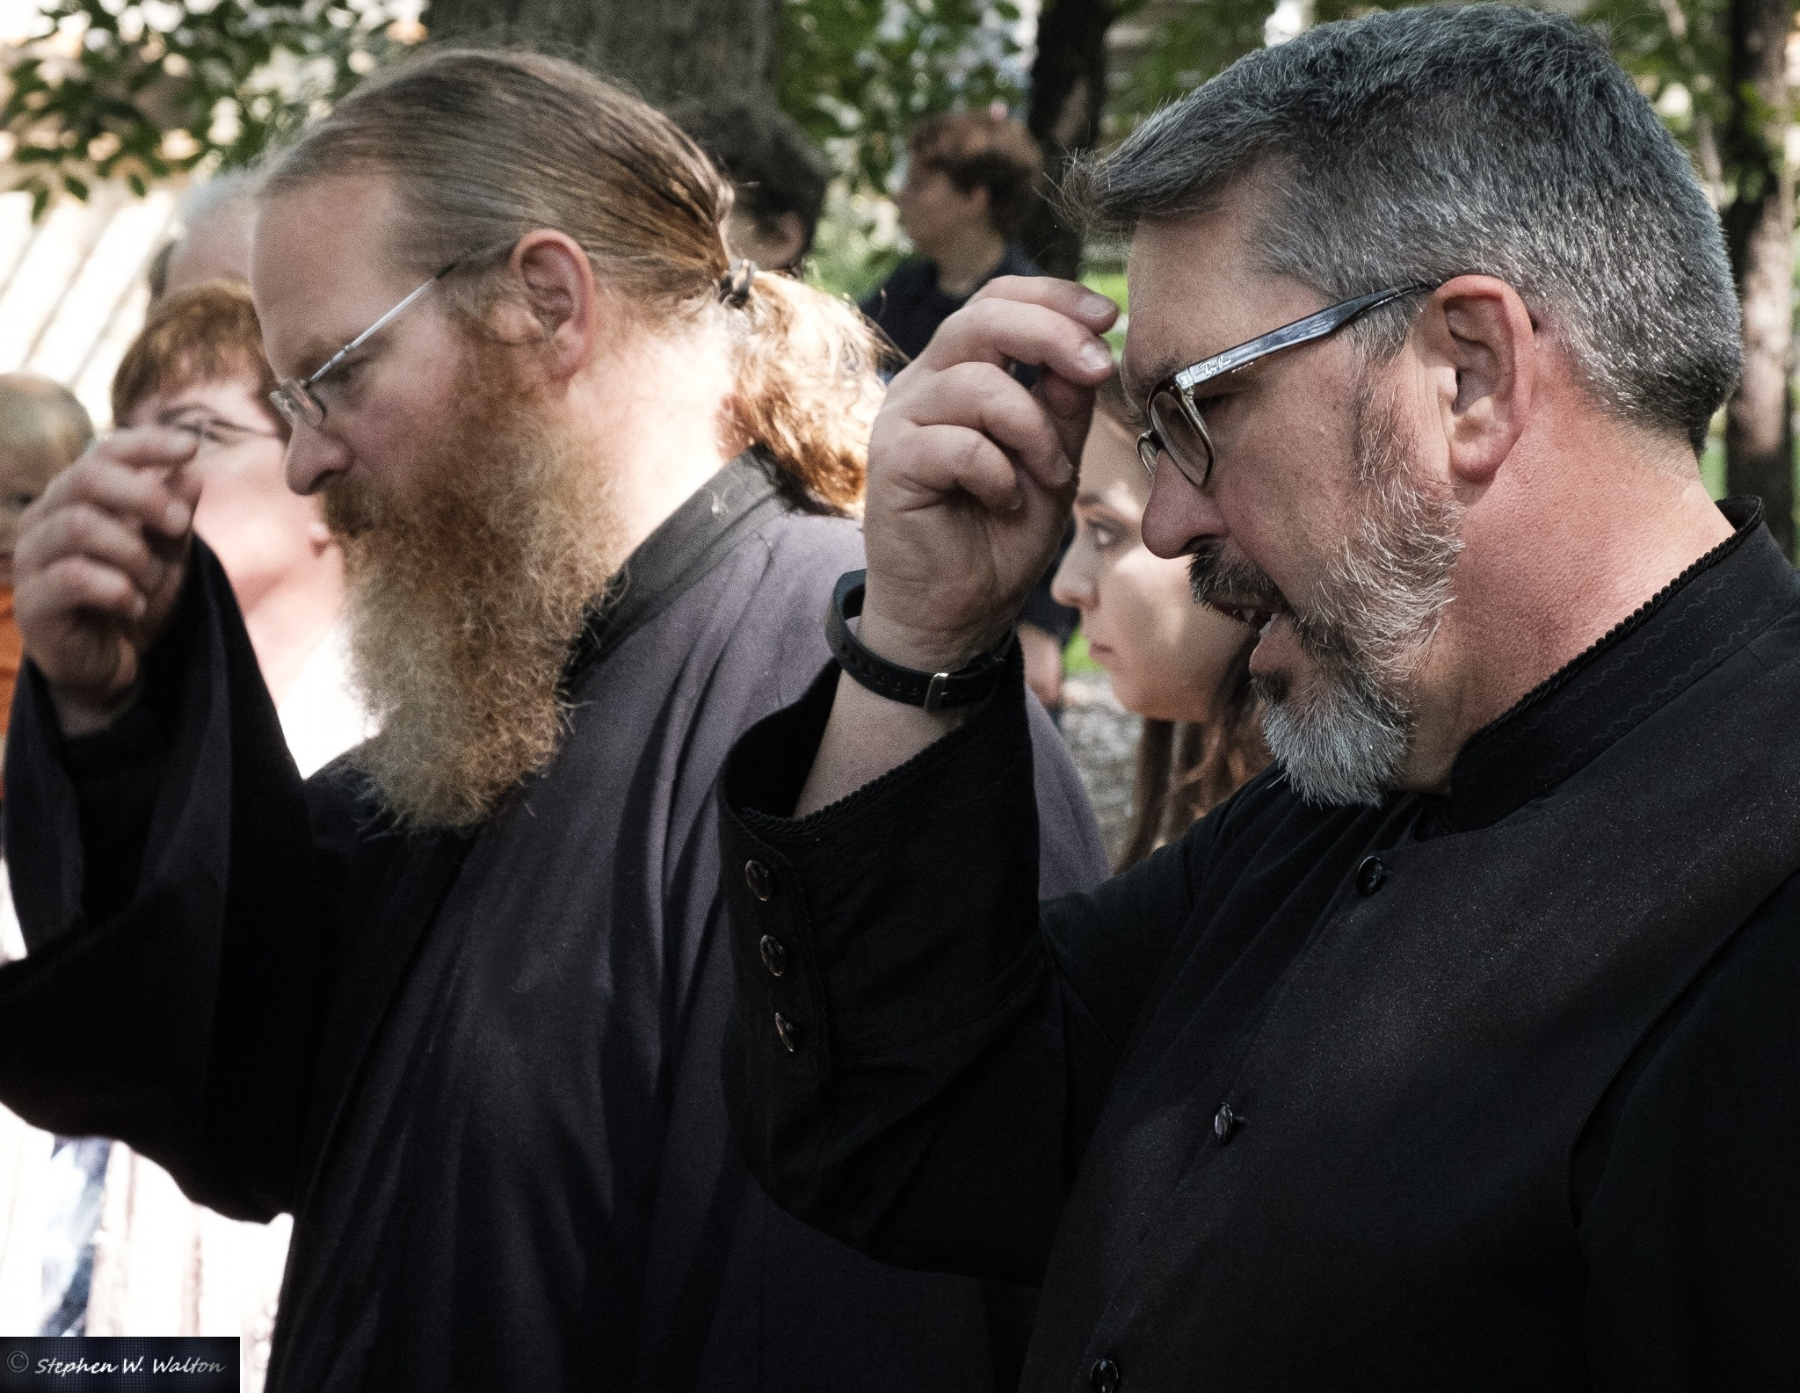 Our own Dcn. Michael Schlaack, and Dcn. Timothy Kolb (visiting us from St. Tikhon's) participated in the blessing, which was held in front of the Shrine located on our beautiful parish property.